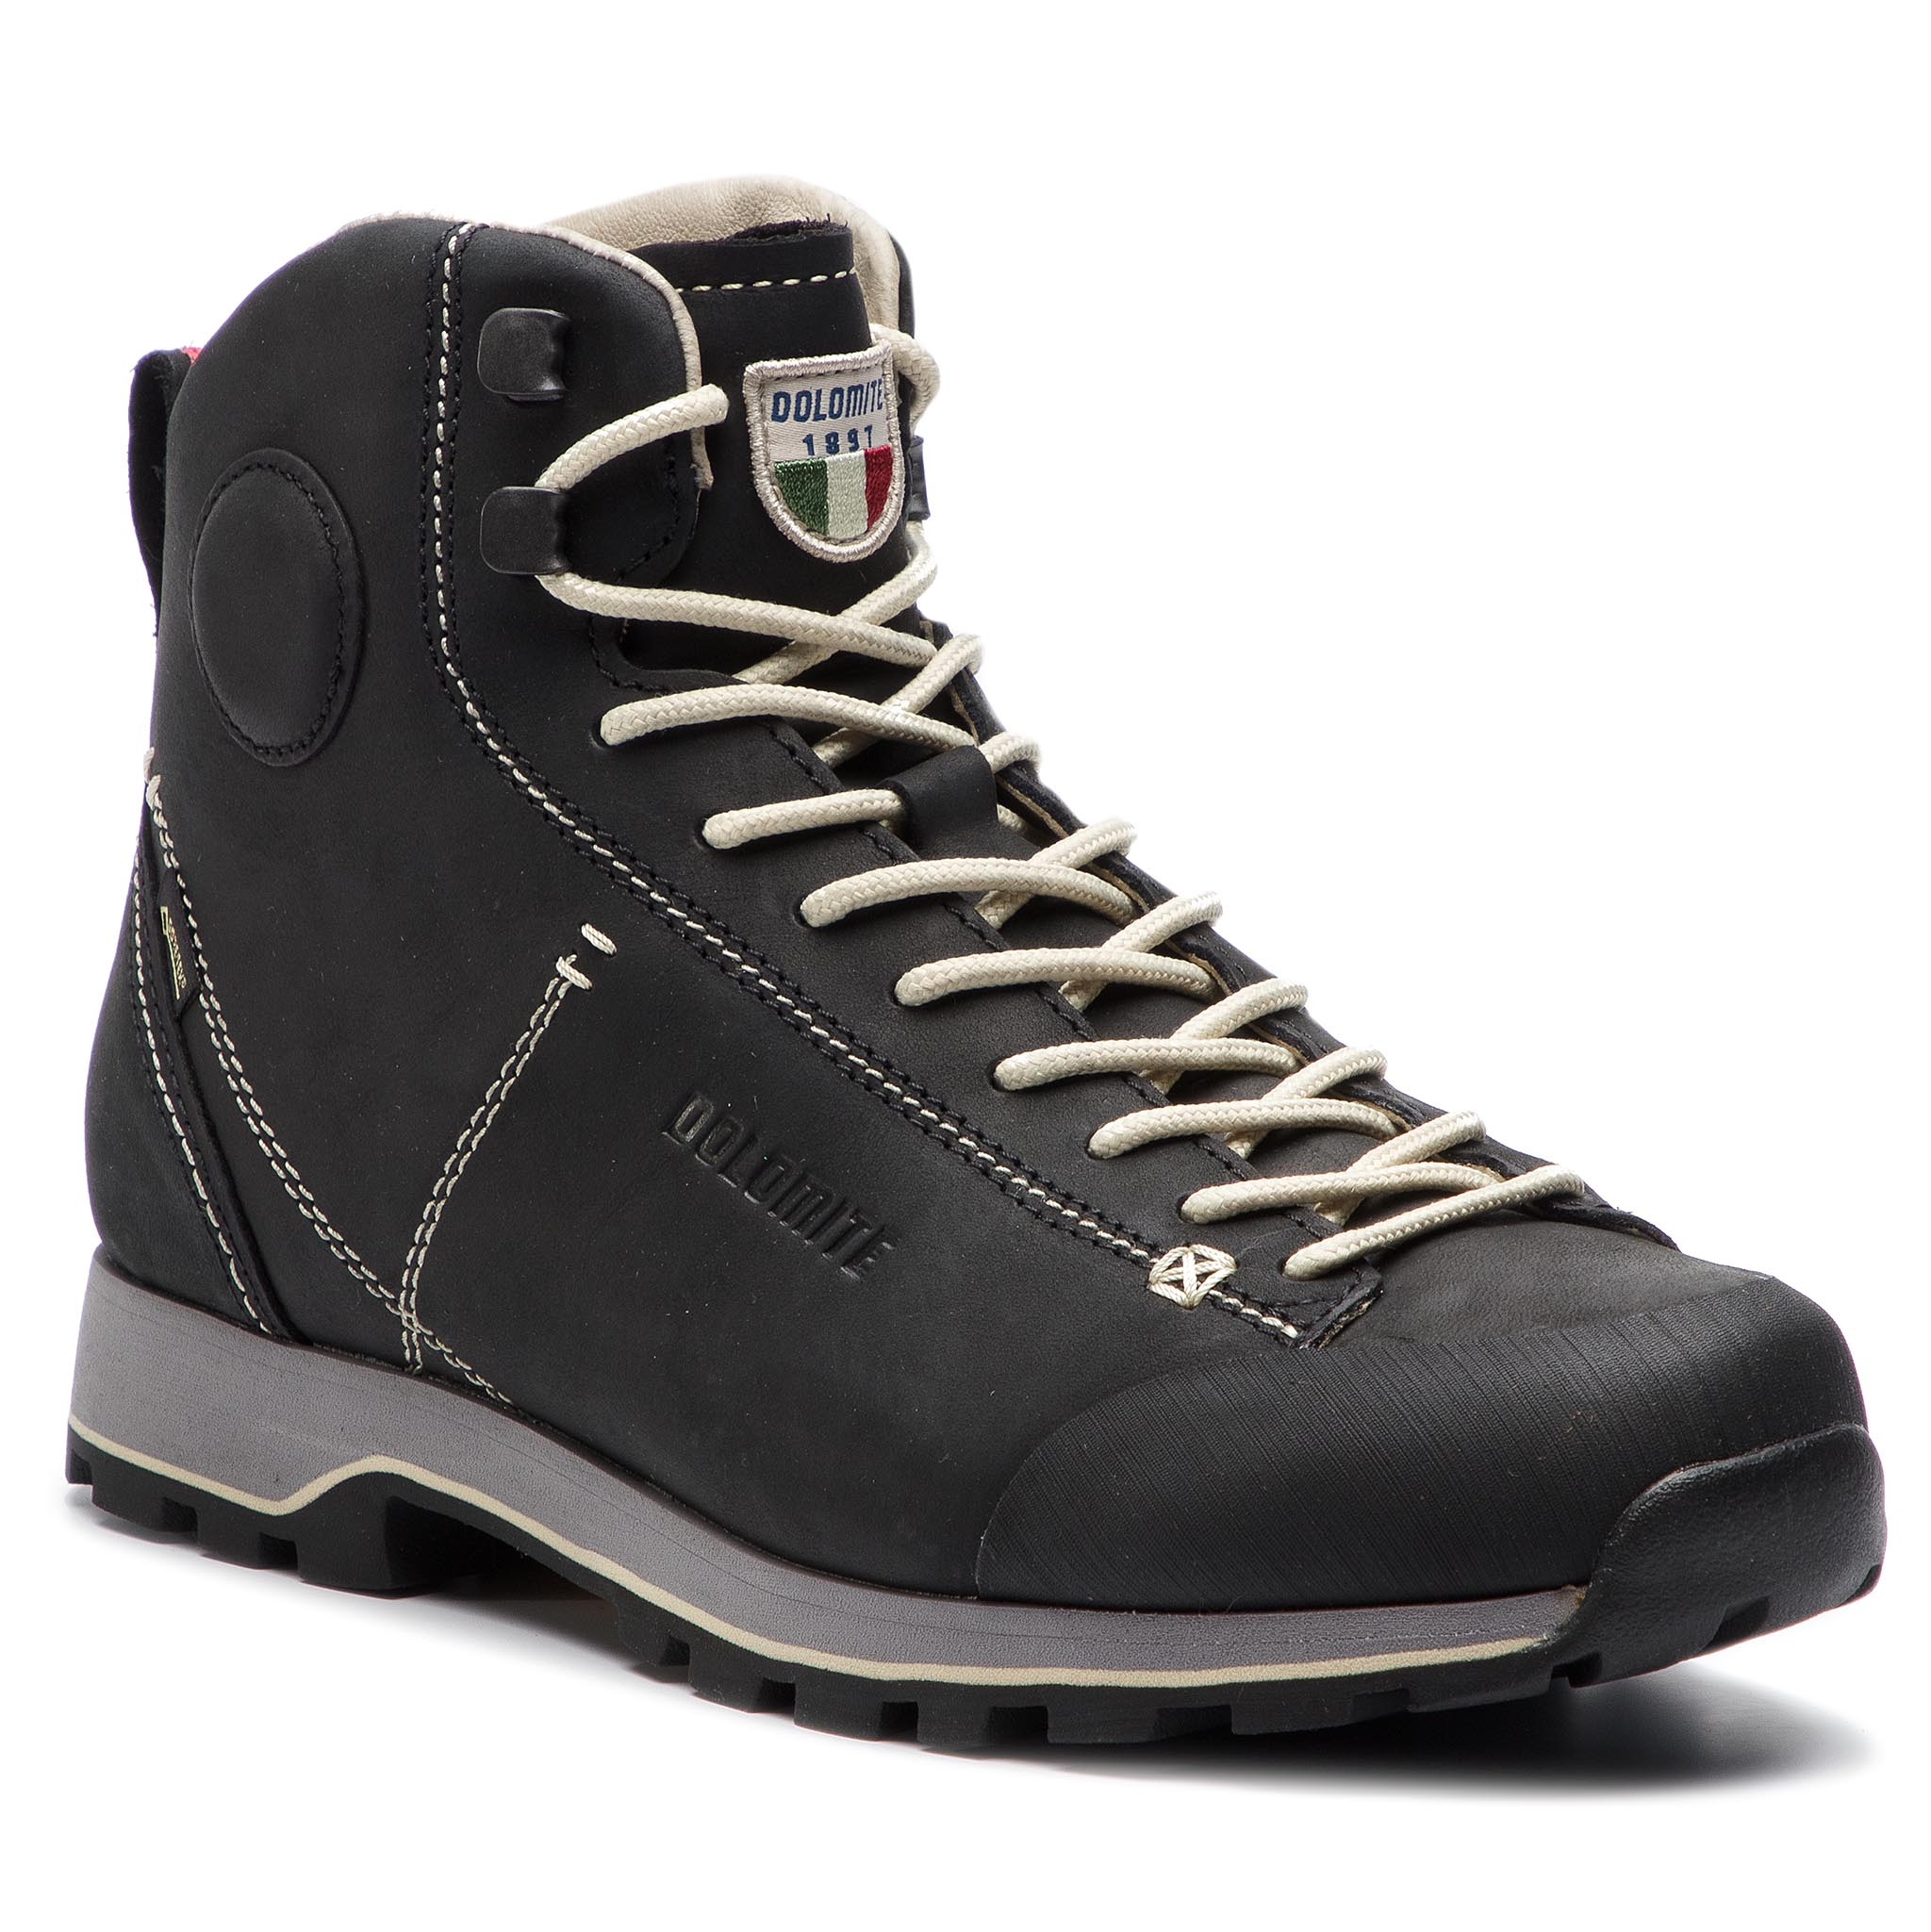 Trekkings Dolomite - Cinquantaquattro High Fg Gtx Gore-Tex 247958-0119011 Black imagine epantofi.ro 2021